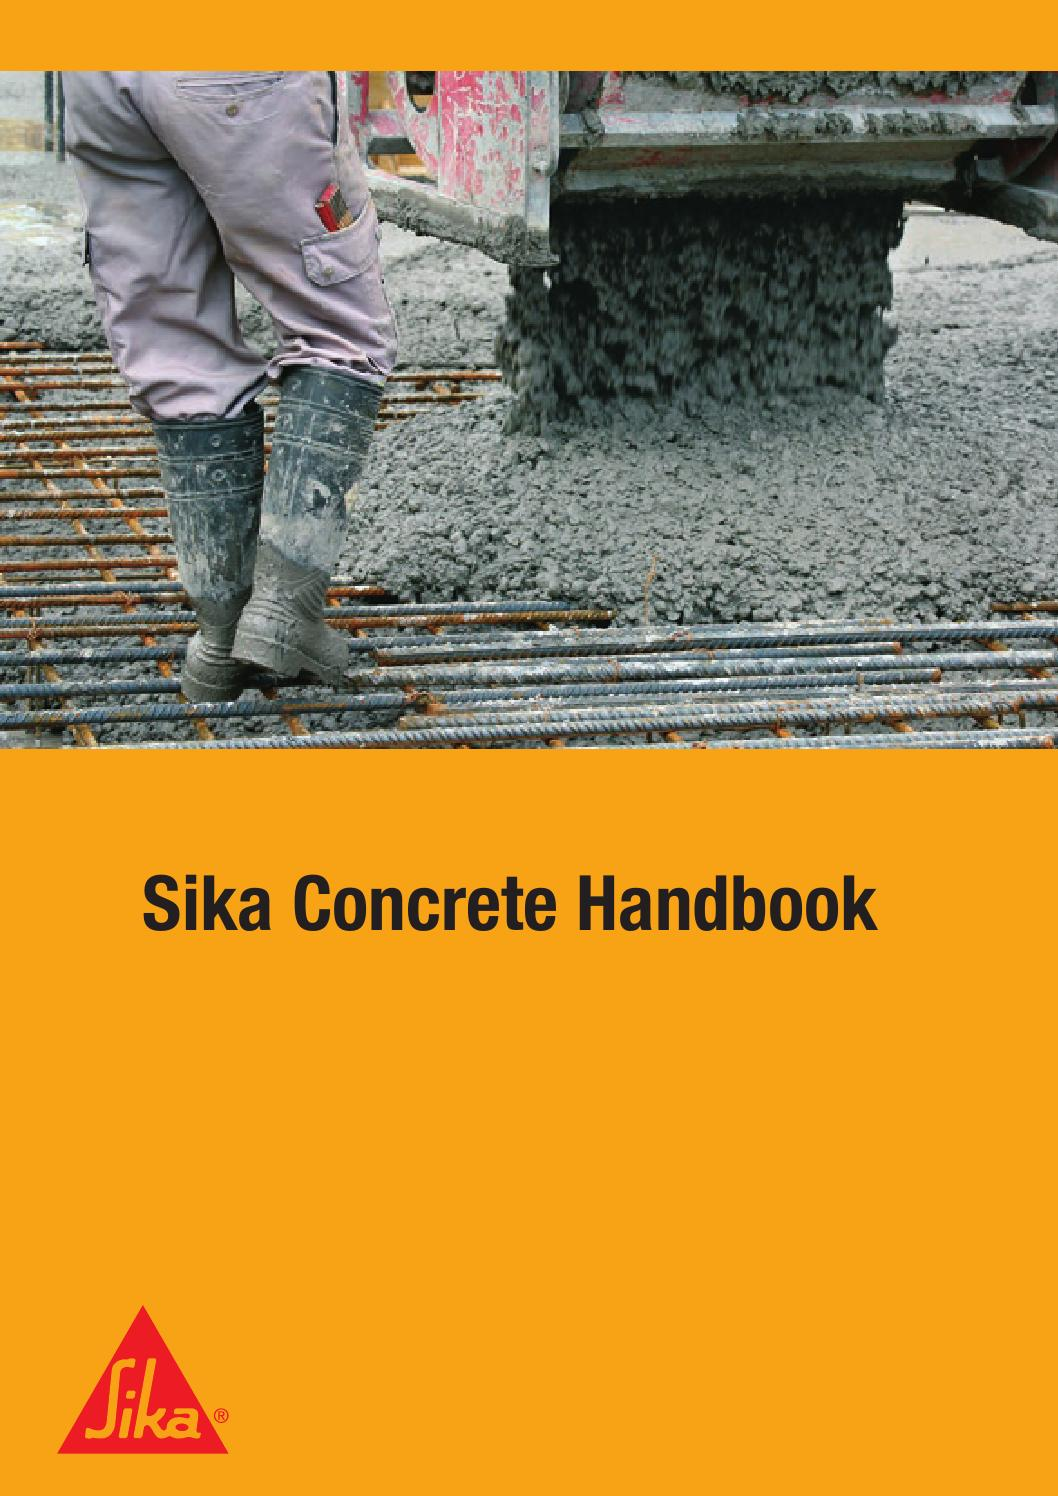 General Truck Sales >> Sika Concrete Handbook by Sika AG - Issuu